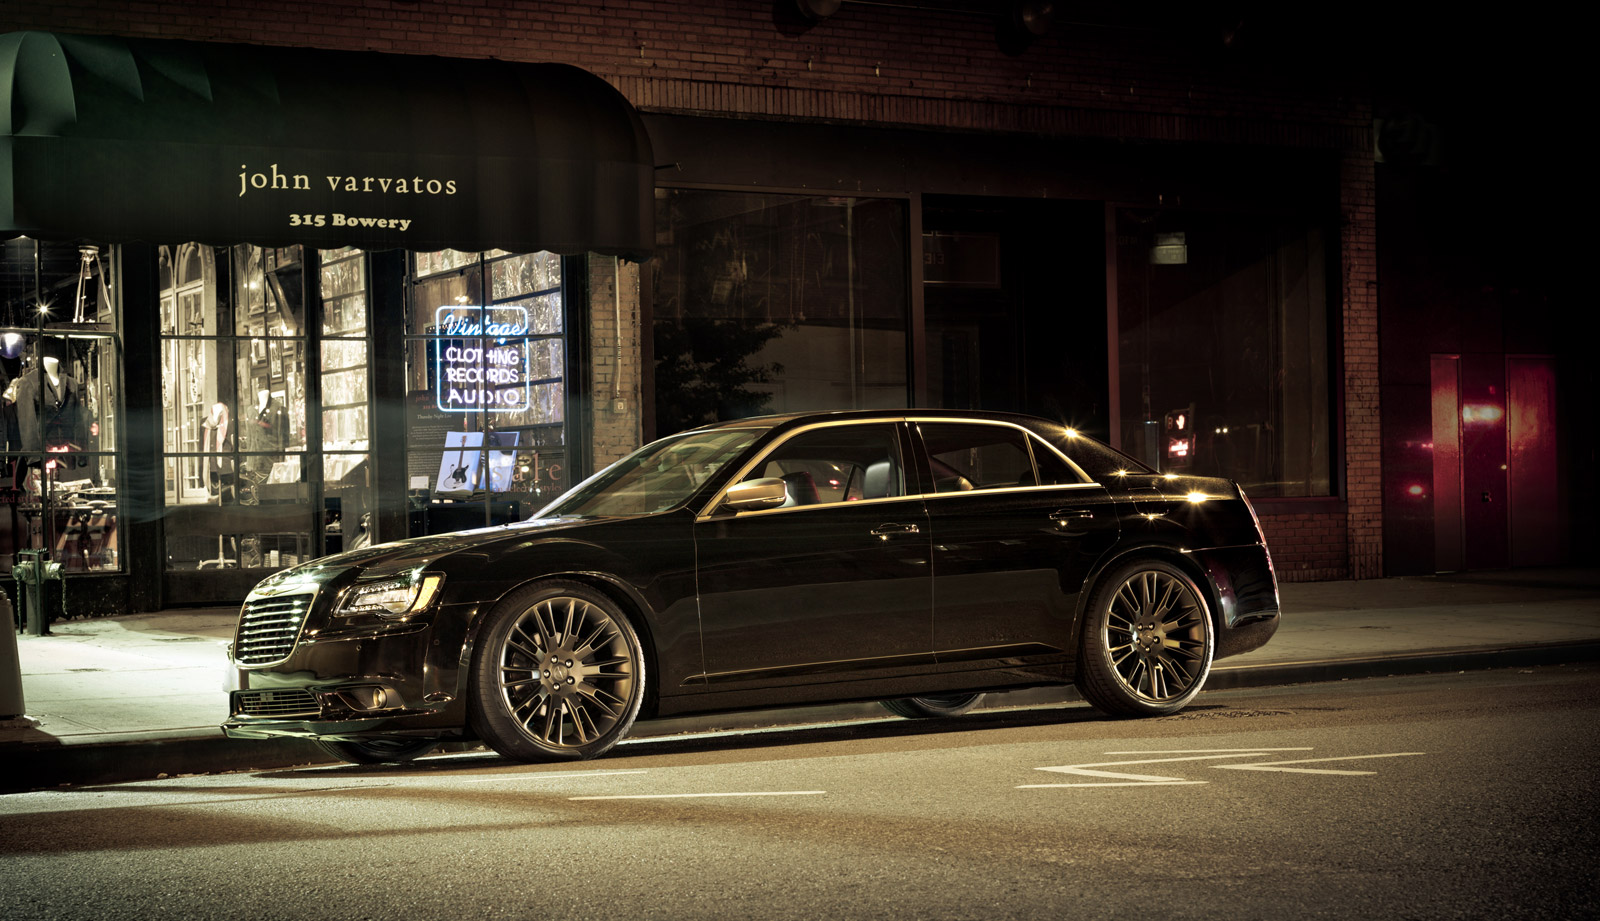 fashion s john varvatos designs two special chrysler 300 sedans. Black Bedroom Furniture Sets. Home Design Ideas